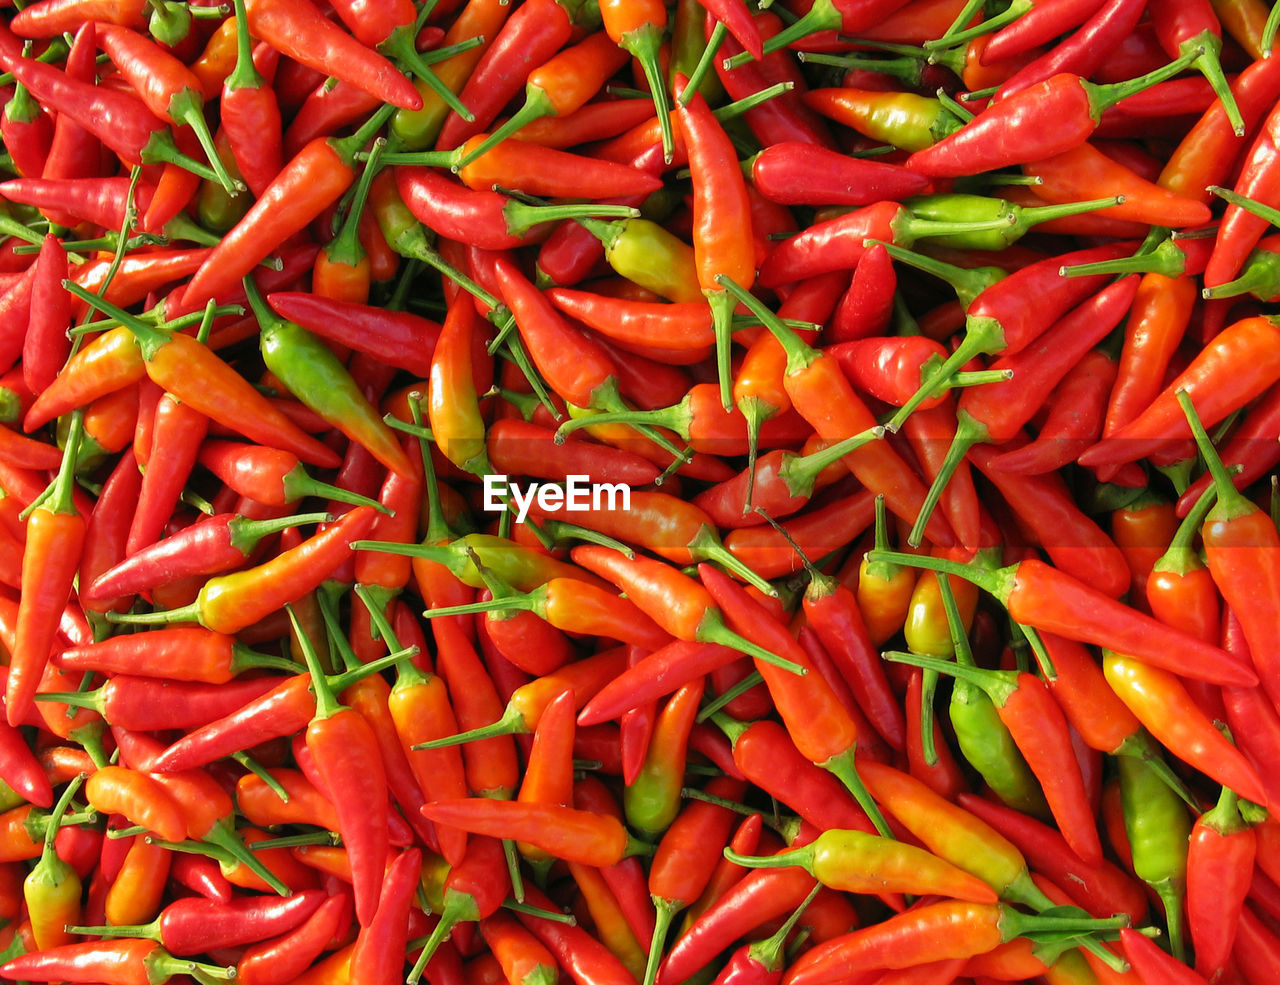 red, vegetable, food, spice, full frame, chili pepper, backgrounds, large group of objects, pepper, food and drink, red chili pepper, abundance, freshness, market, for sale, still life, no people, retail, high angle view, wellbeing, ripe